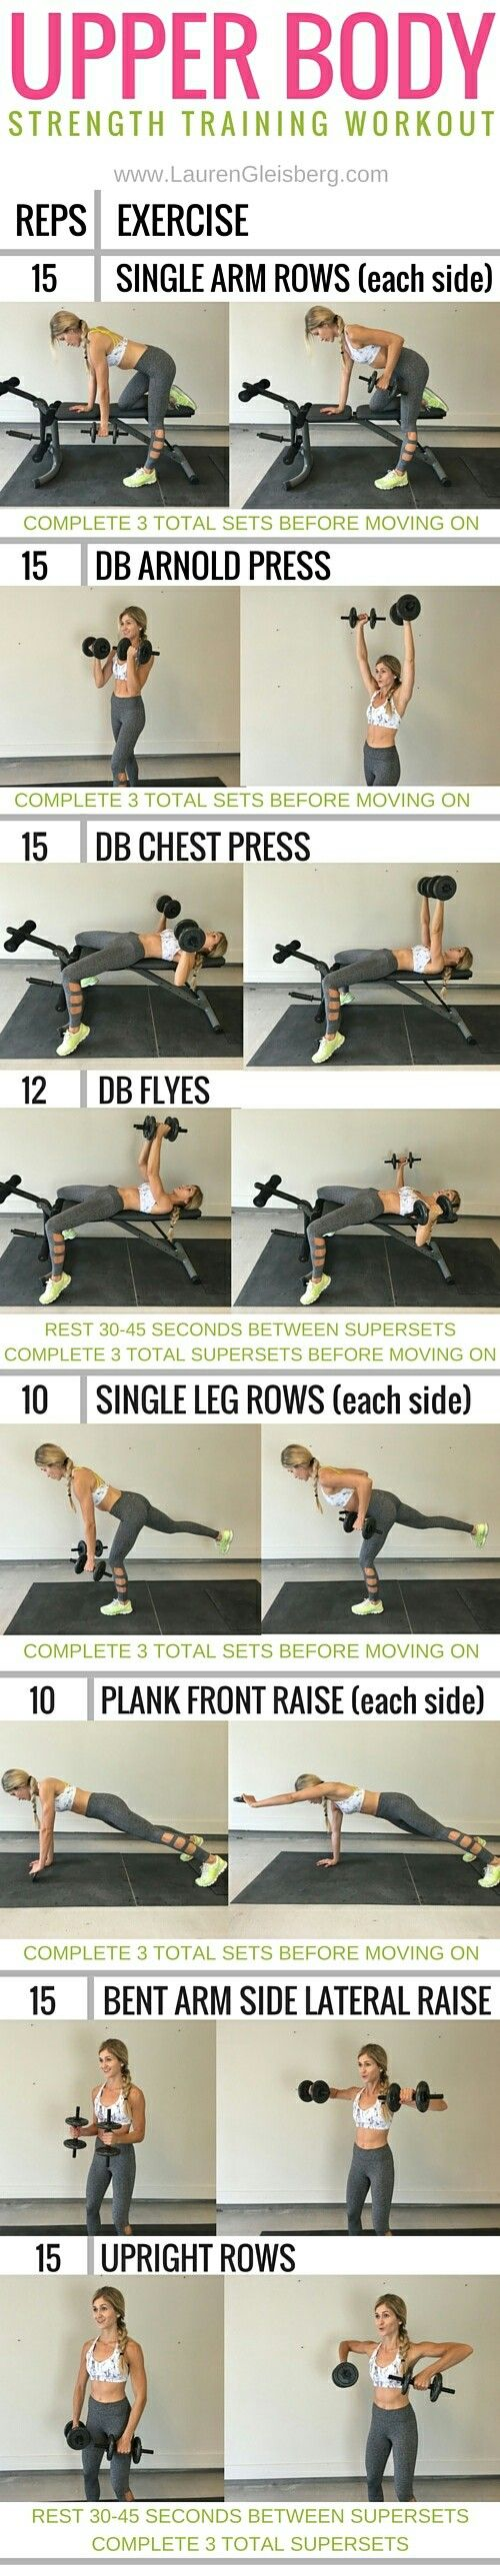 Upper Body Workout - click for more